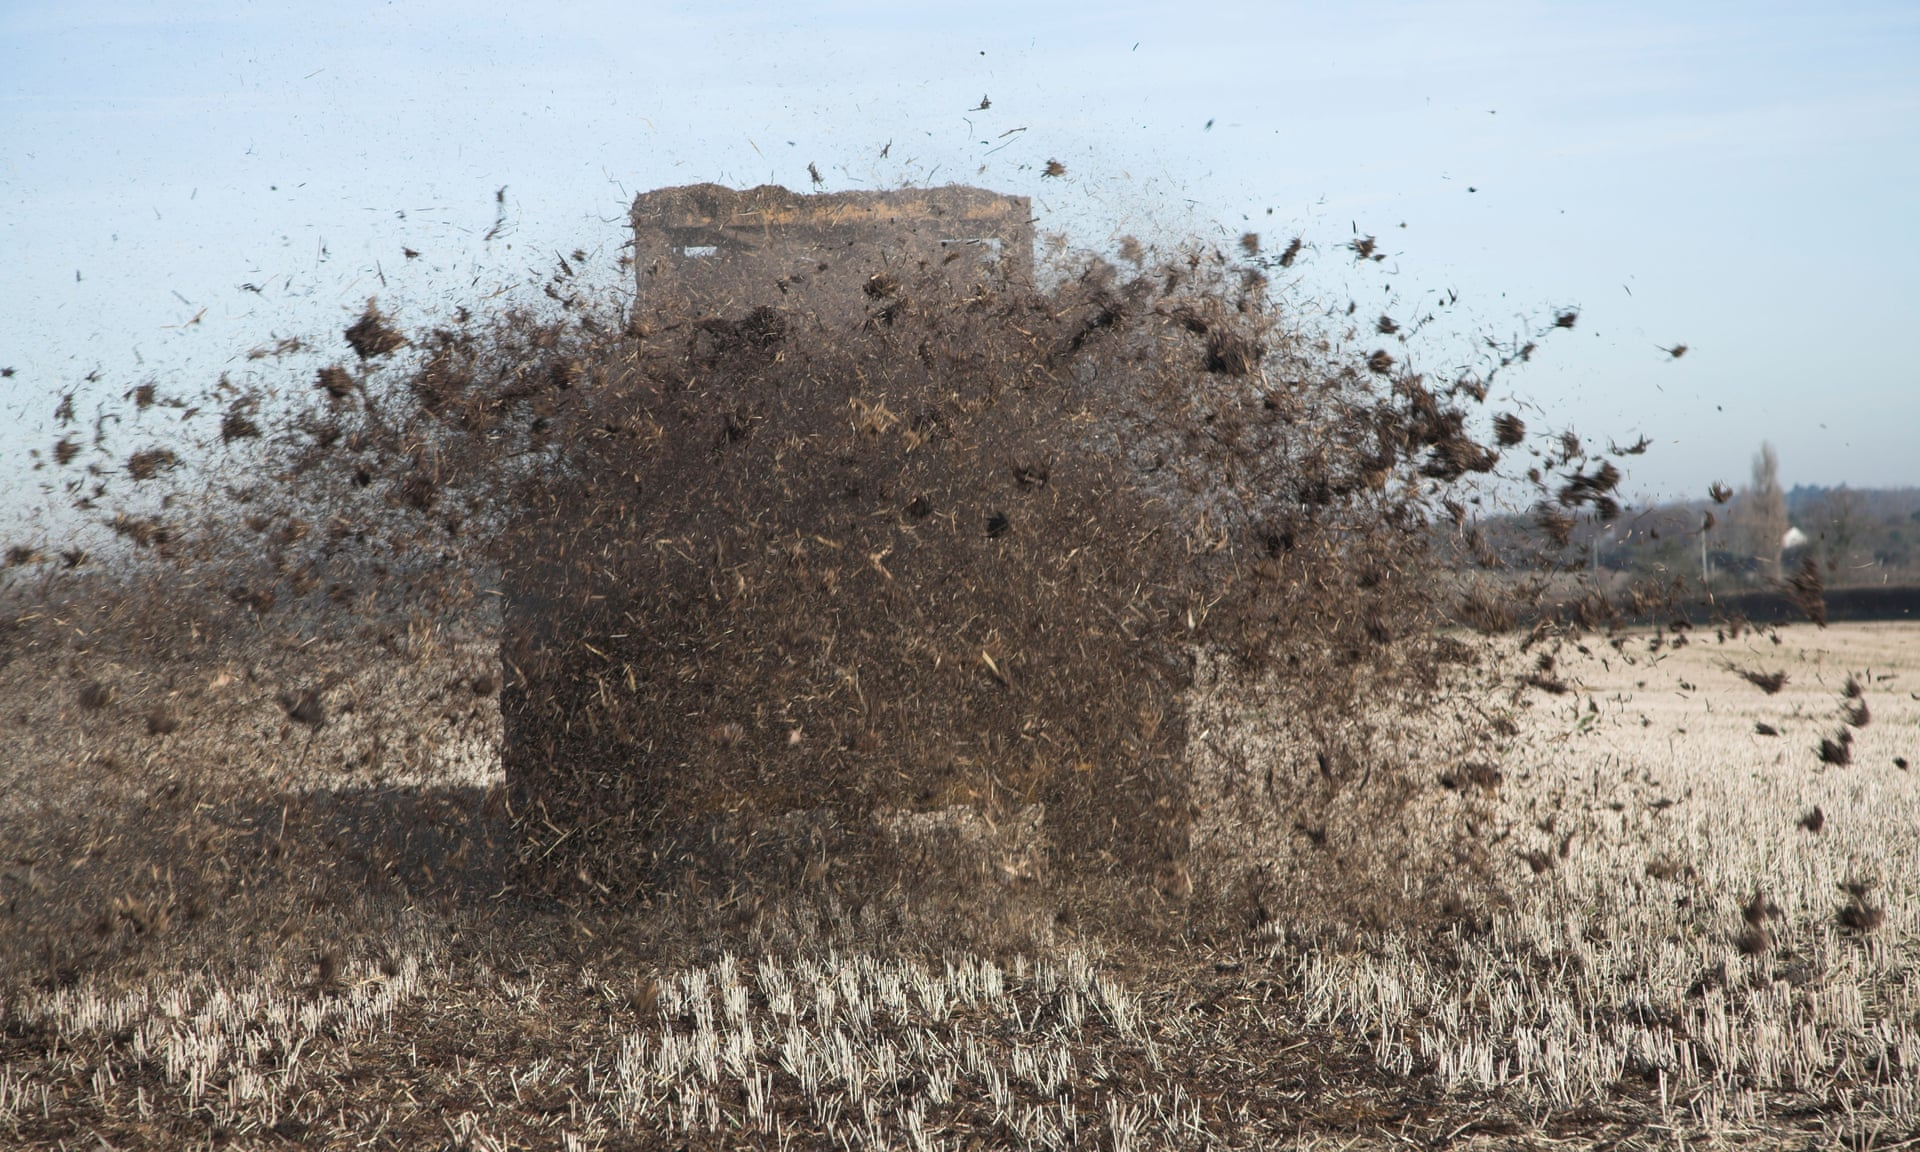 A tractor spreads muck over field of stubble. 'Most organic agriculture is focused on moo poo,' says 'veganic' farmer Will Bonsall.